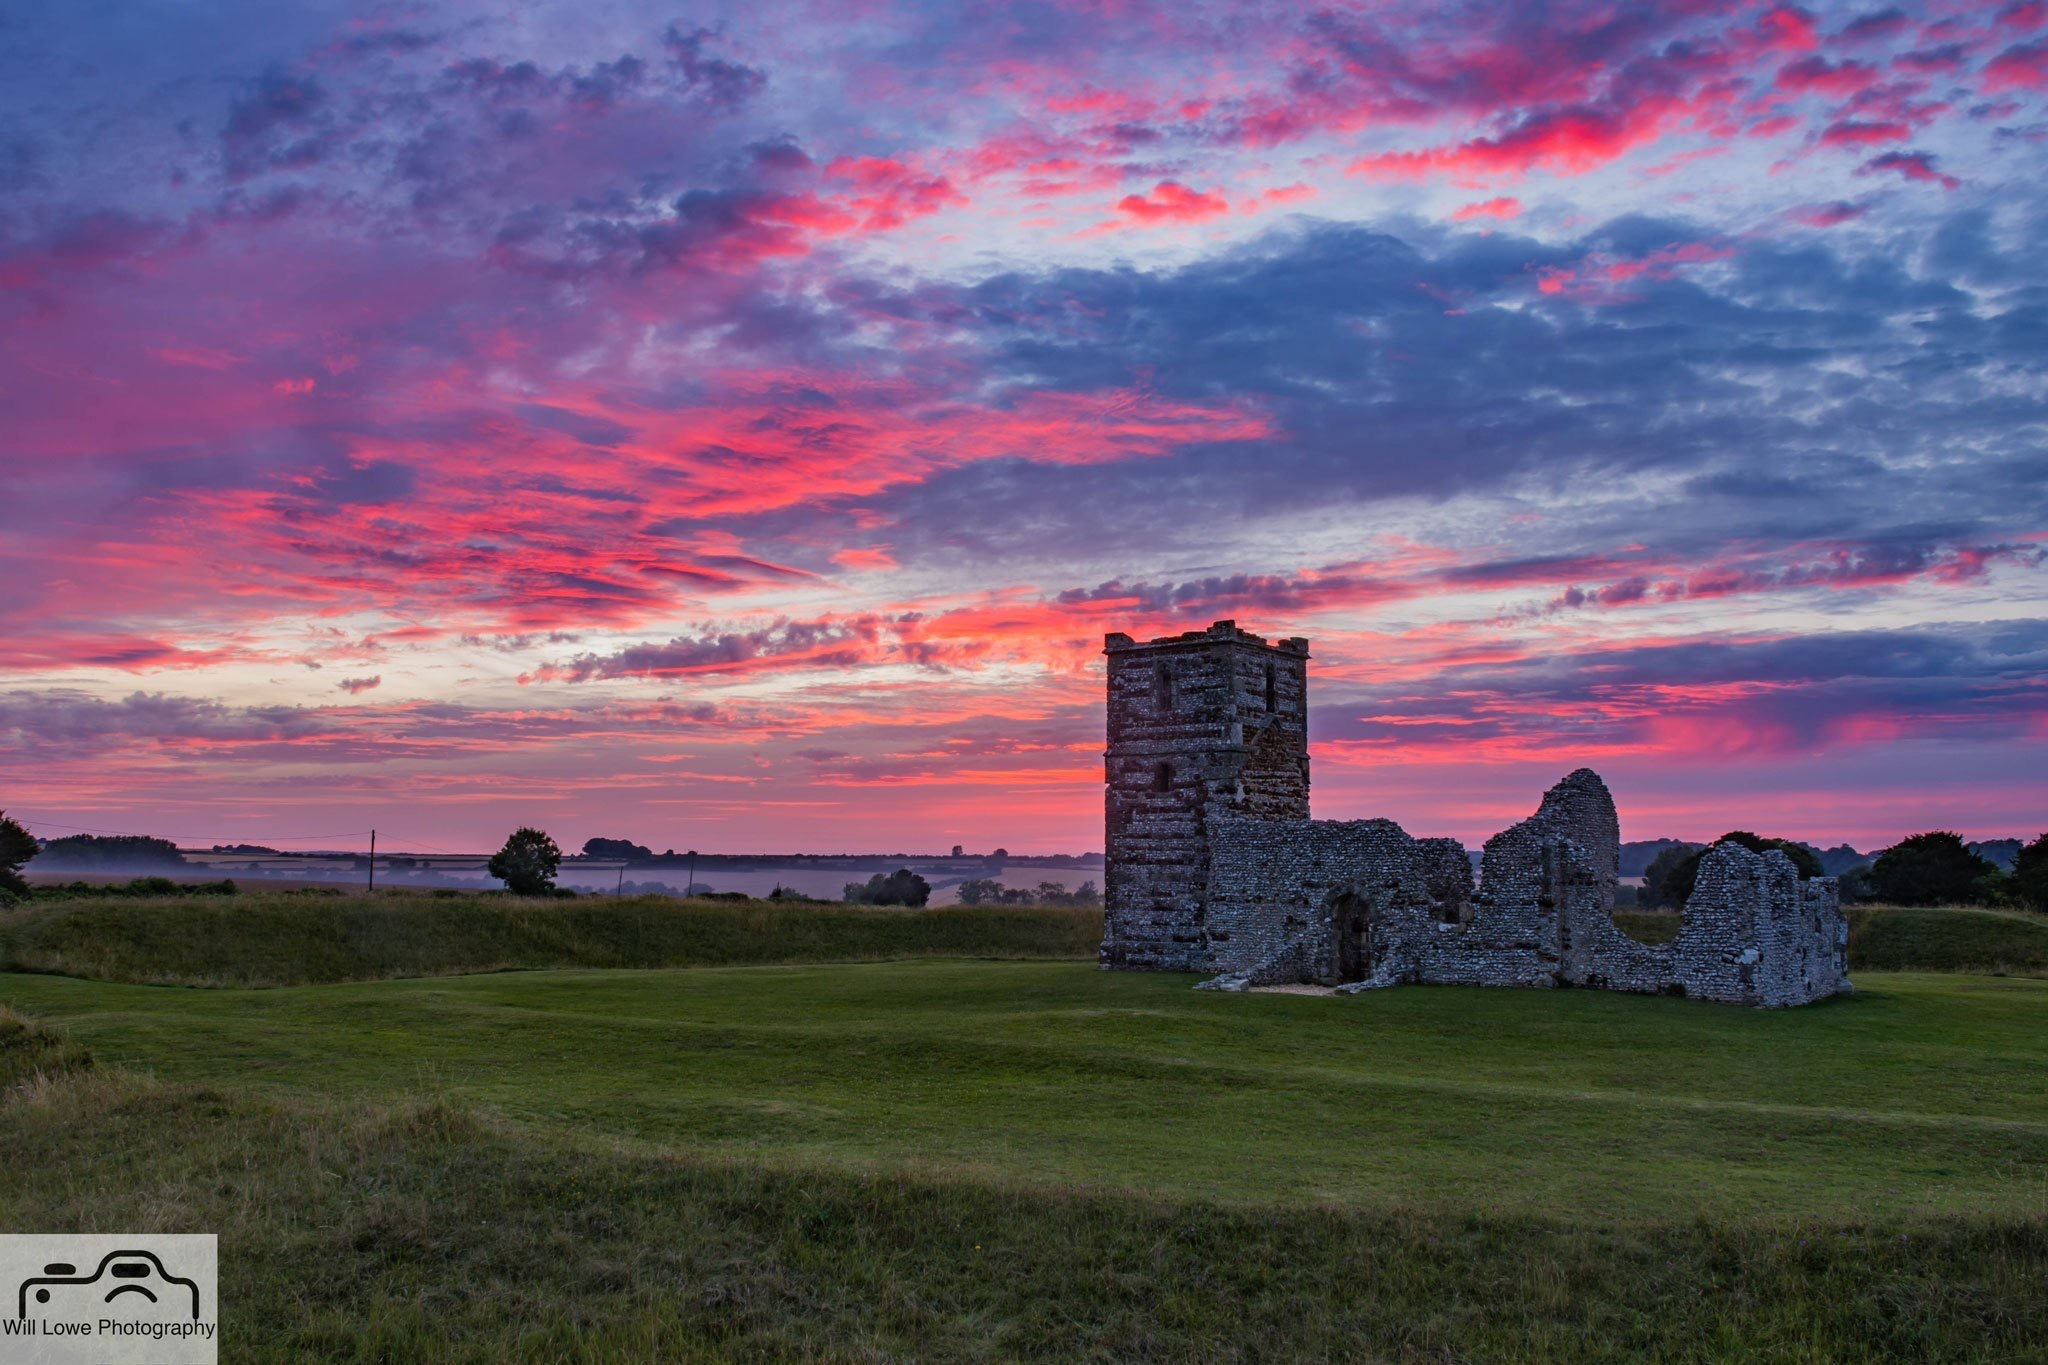 Sunset at Knowlton Church  by Will Lowe Photography